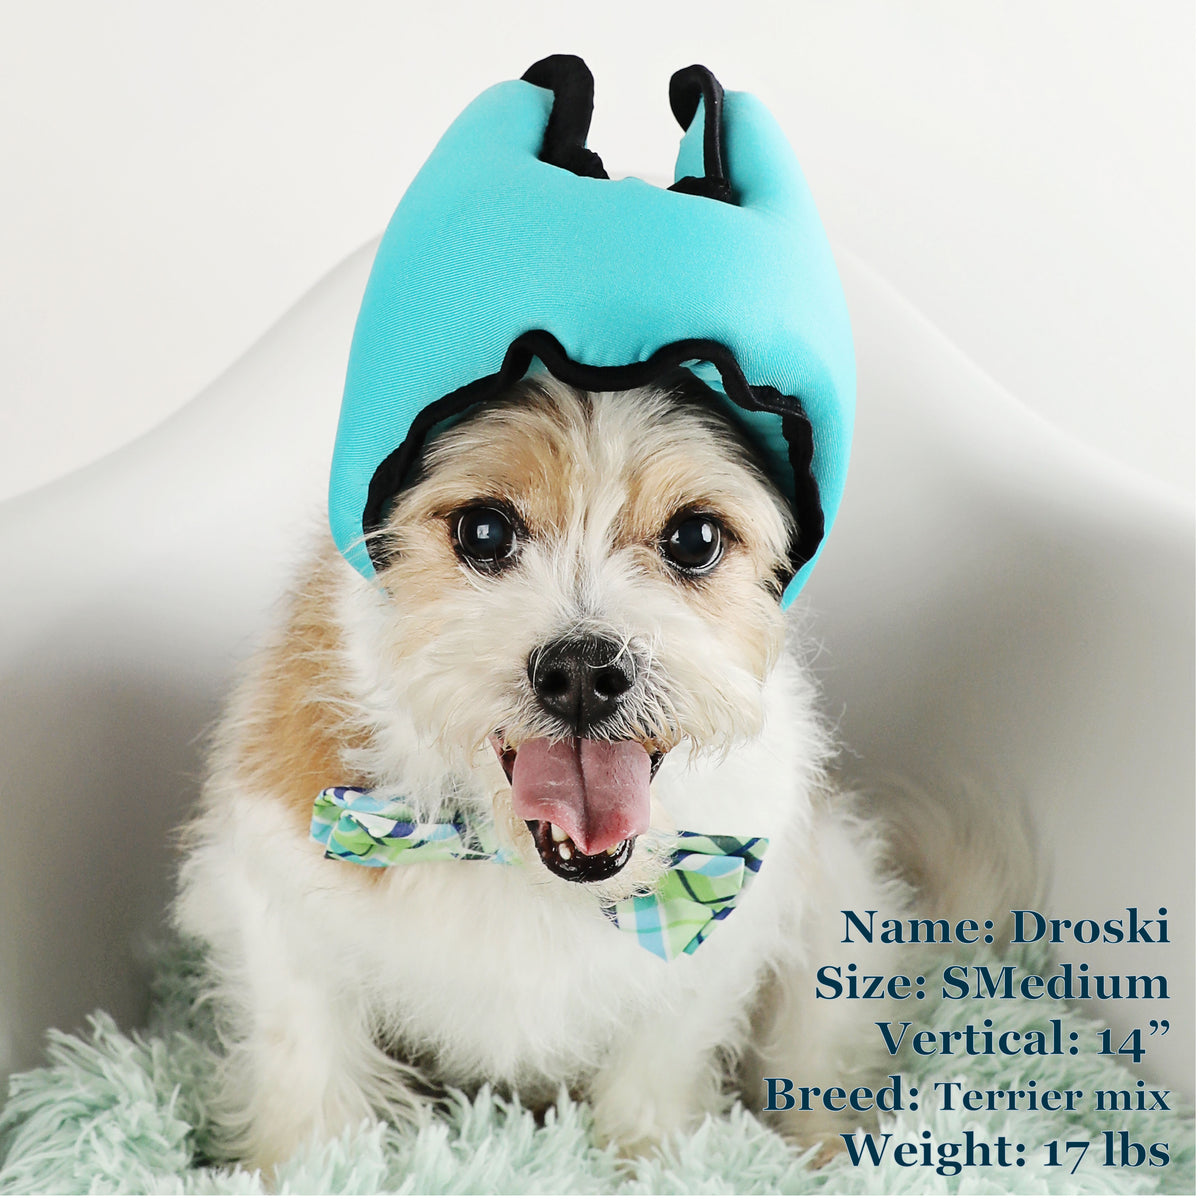 Droski is a Terrier Mix in a SMedium Blue PAWNIX Noise Cancelling Headset for dogs